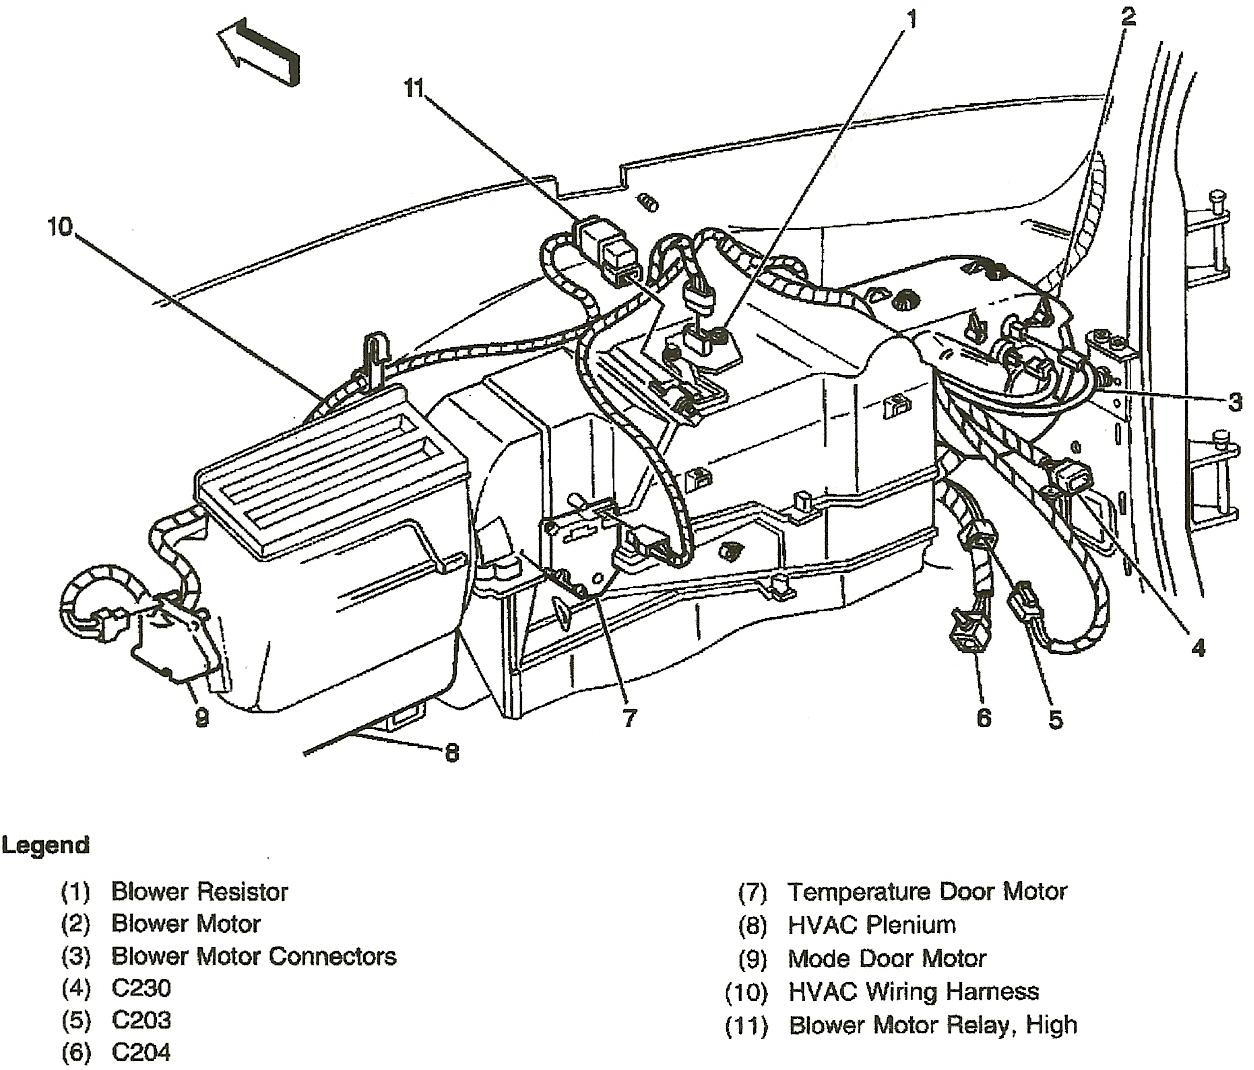 1997 Suburban Blower Motor Wire Schematic | Wiring Diagram 2019 on gm serpentine belt diagram, chevrolet 4.2 l6 engine diagram, colorado 3 5 vortex 3500 engine diagram, 3.8 liter gm engine diagram, car engine diagram, chevy 4.2l engine diagram, gm quad 4 valve diagram, 4.3 v6 engine diagram, w12 engine animation diagram, 4.2 firing order diagram, 4300 vortec sensor diagram, ford 3.8 v6 engine diagram, gmc envoy engine diagram, 1997 318i engine diagram,